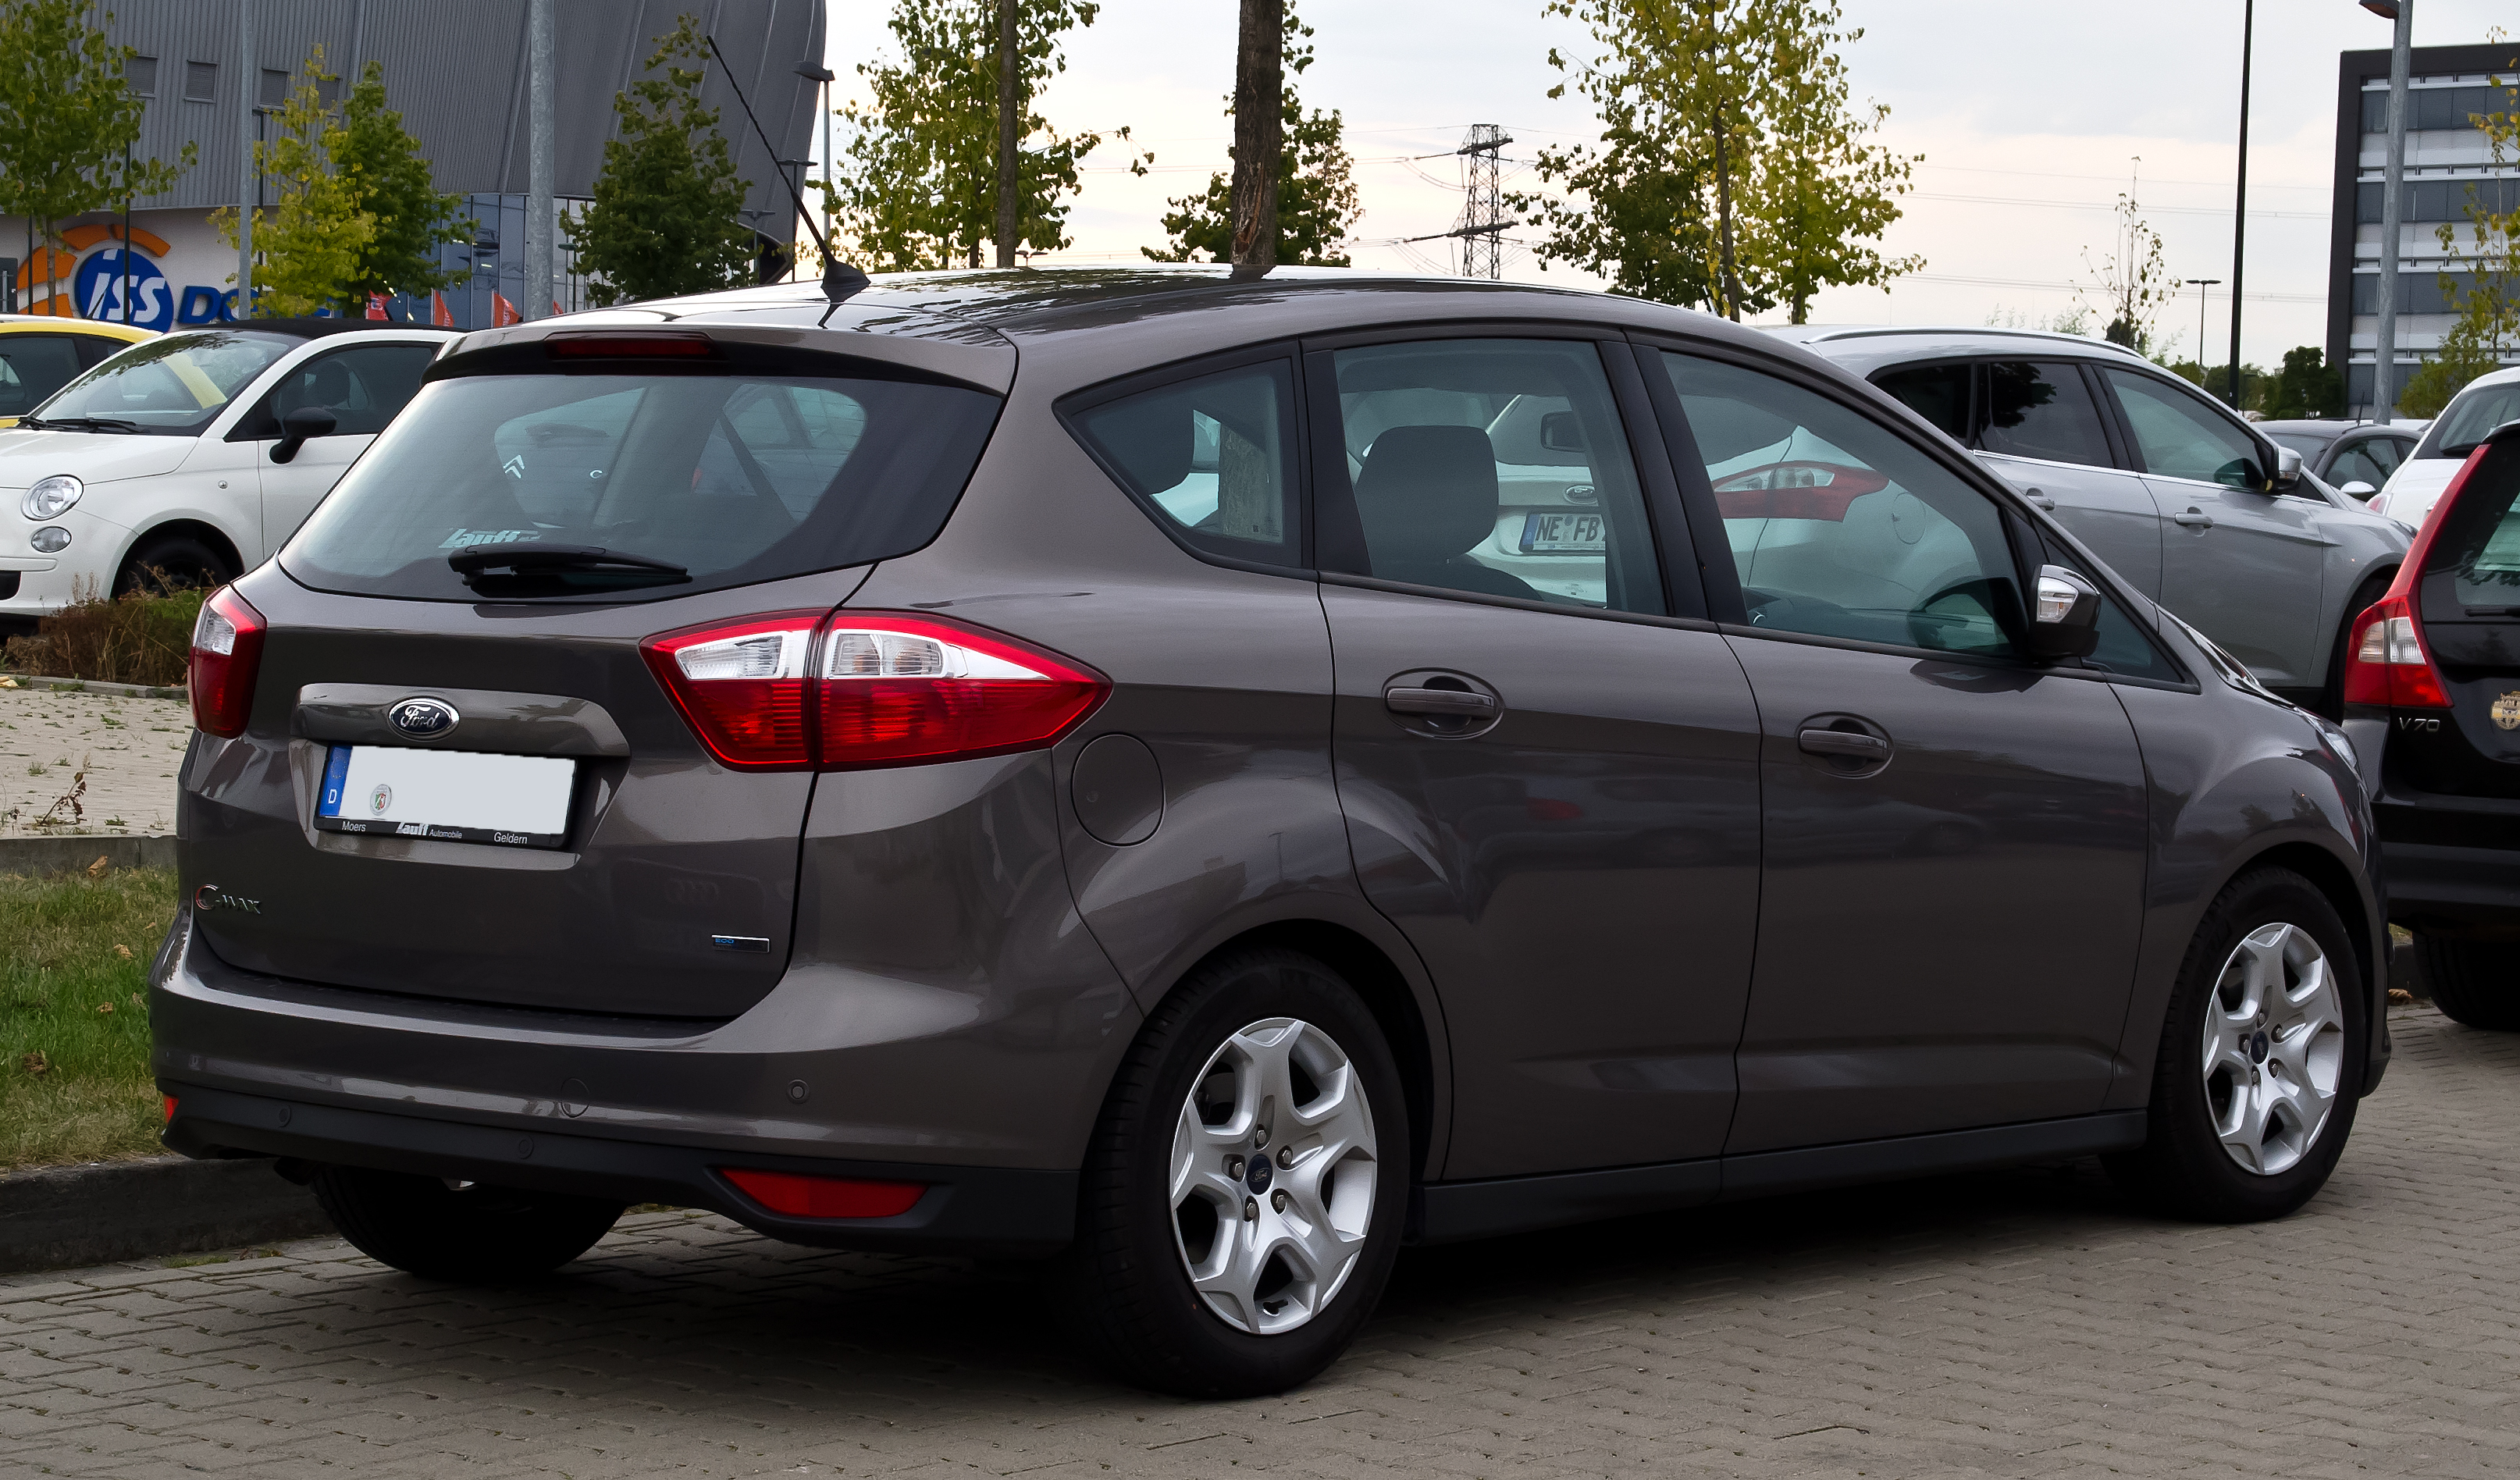 ford c-max wallpaper #3